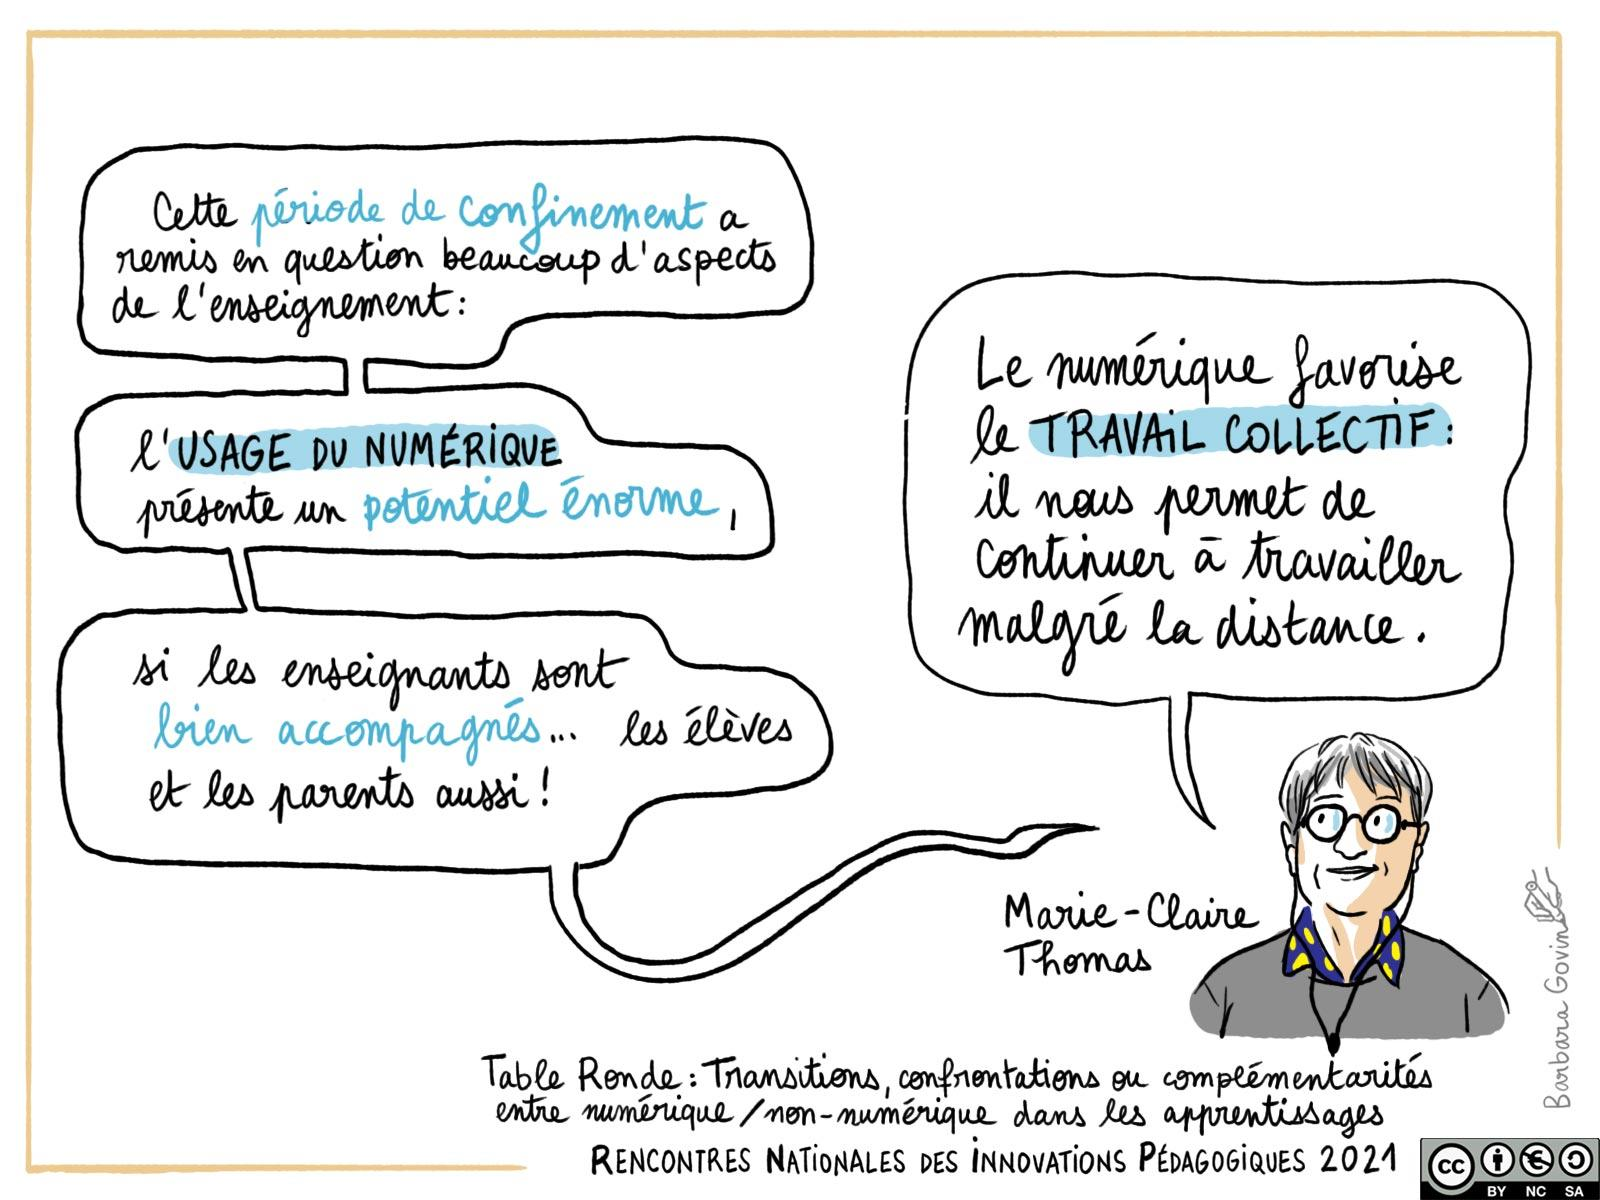 24. table ronde - Marie-Claire Thomas